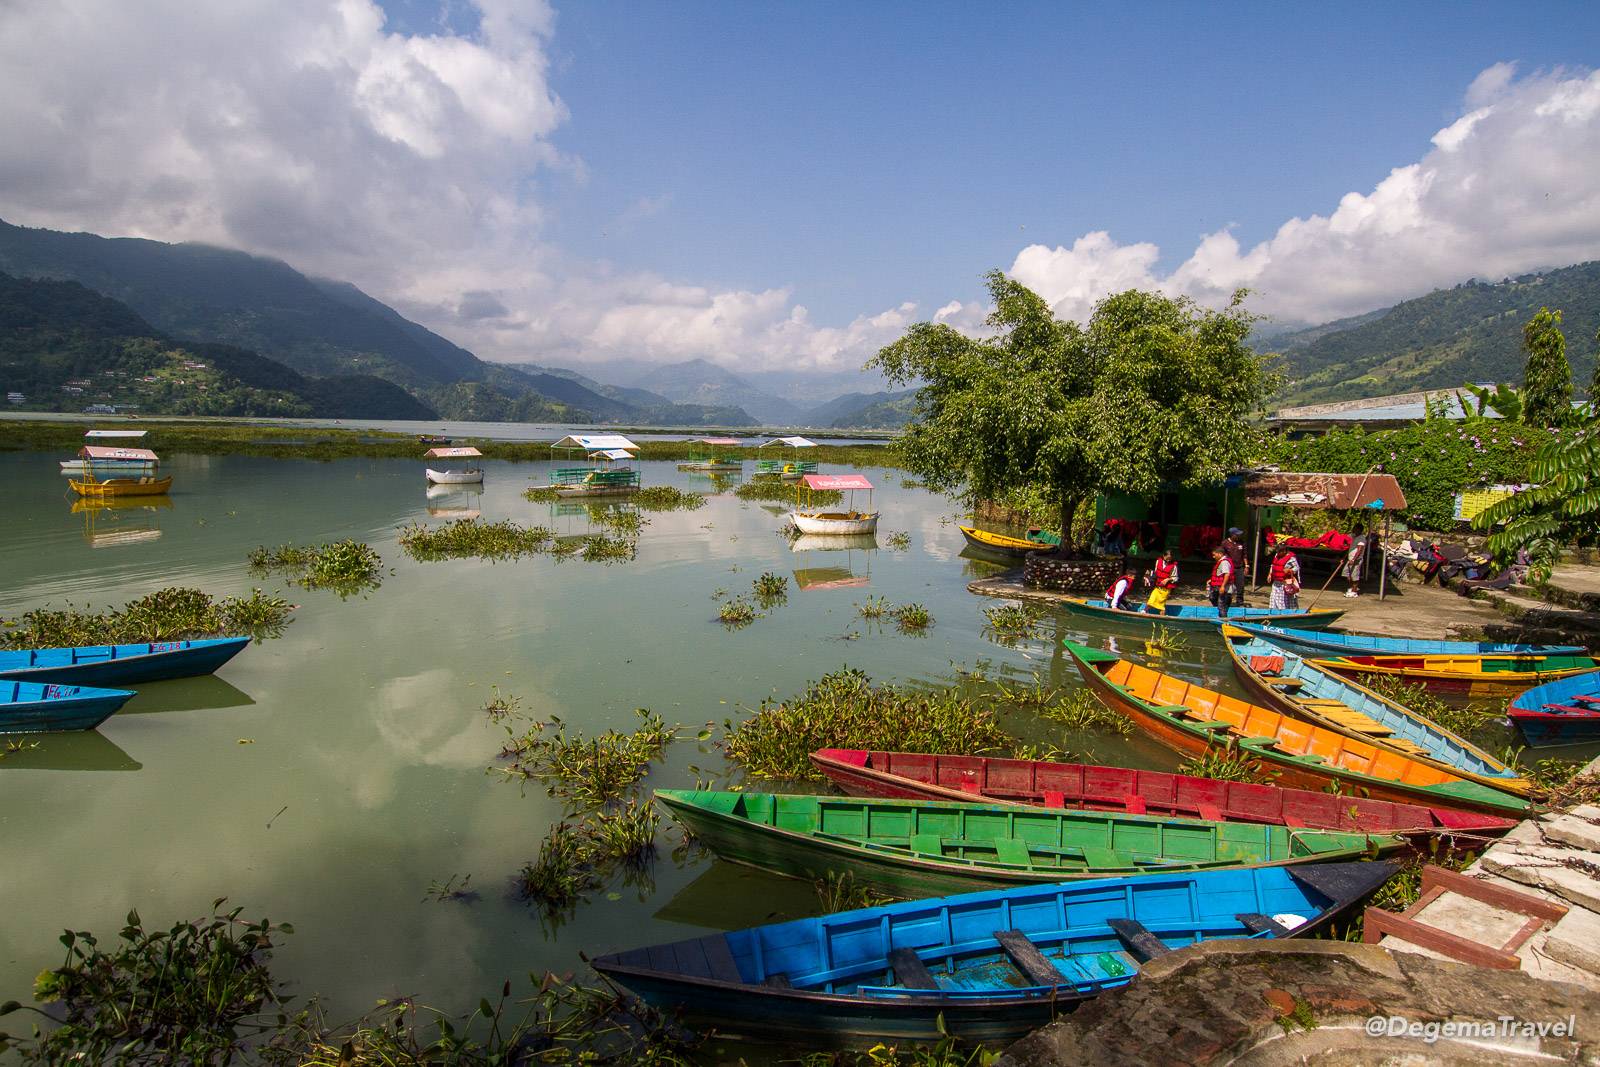 Pokhara: Nepal's Outdoor Adventure Hub